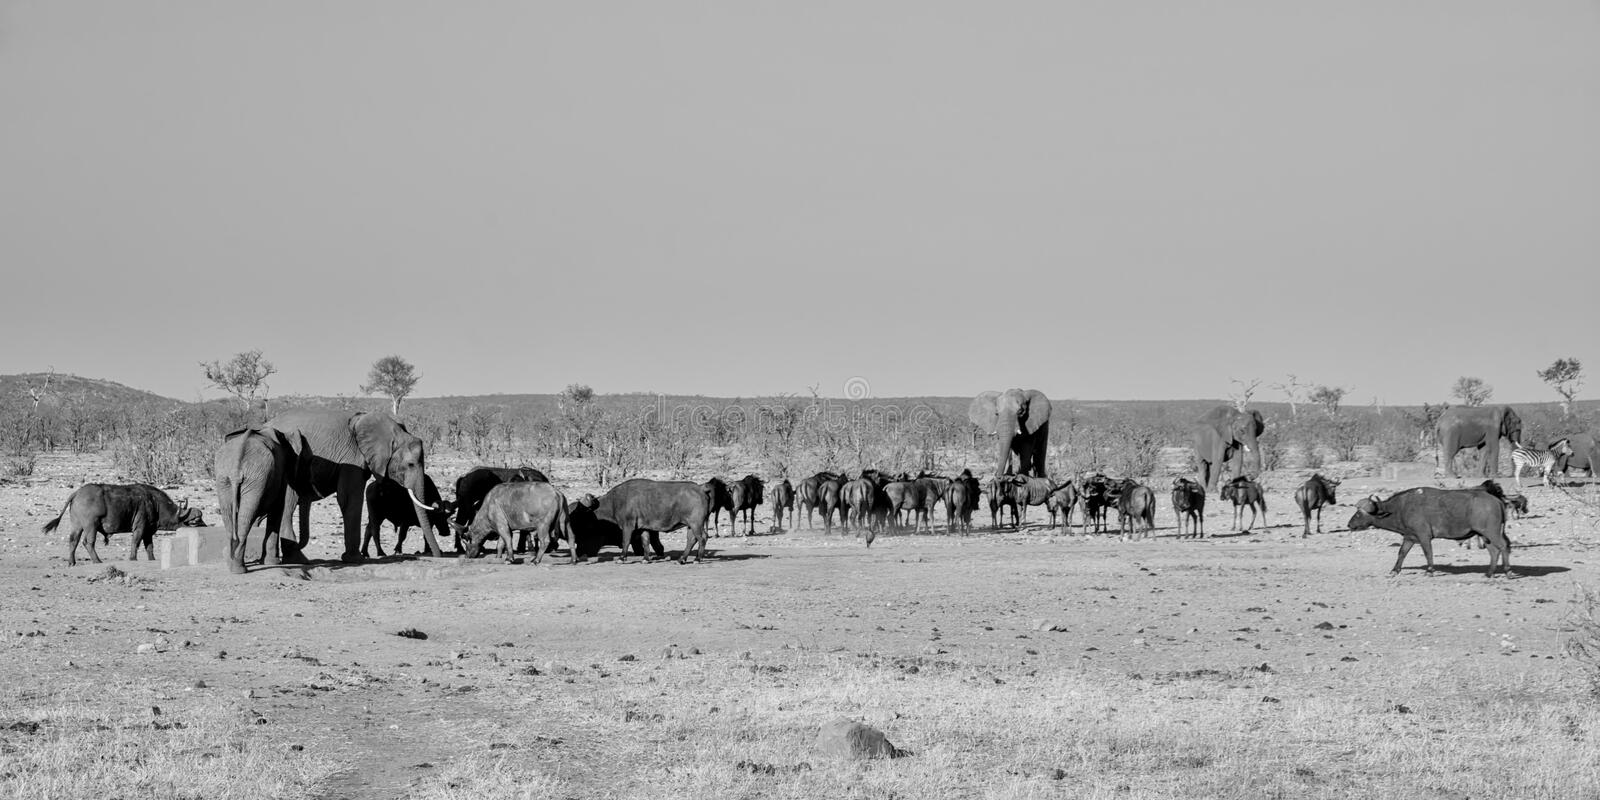 Busy Watering Hole. A busy watering hole in Southern African savanna stock images